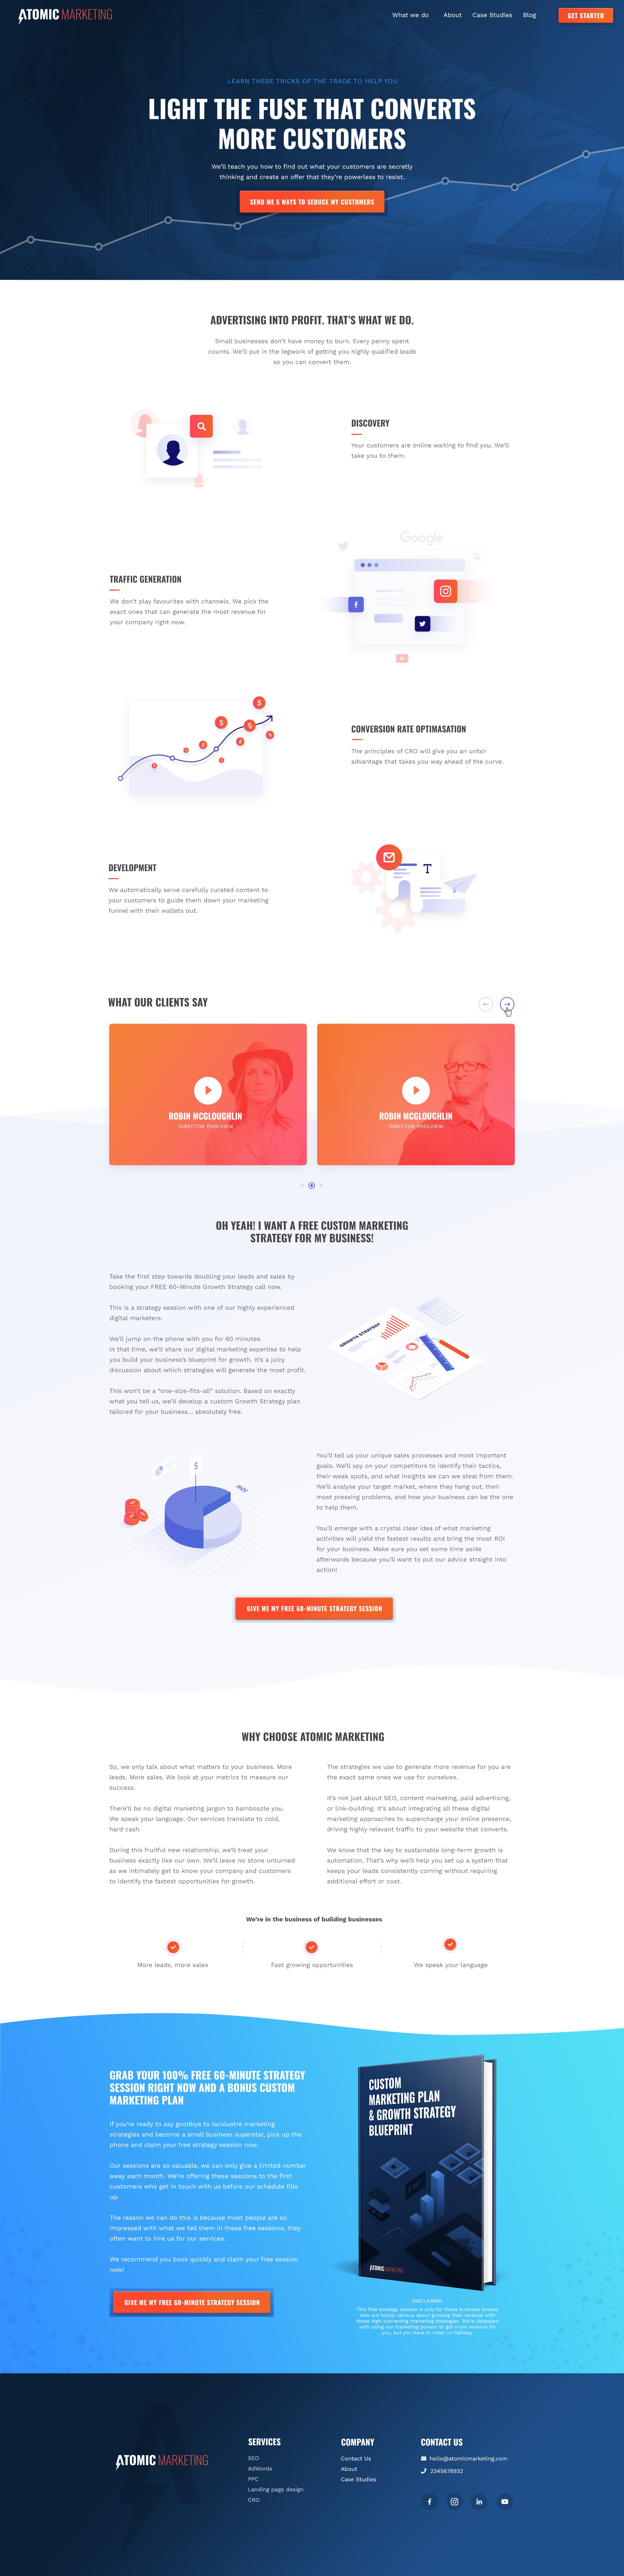 Homepage & Multi Stage Form design